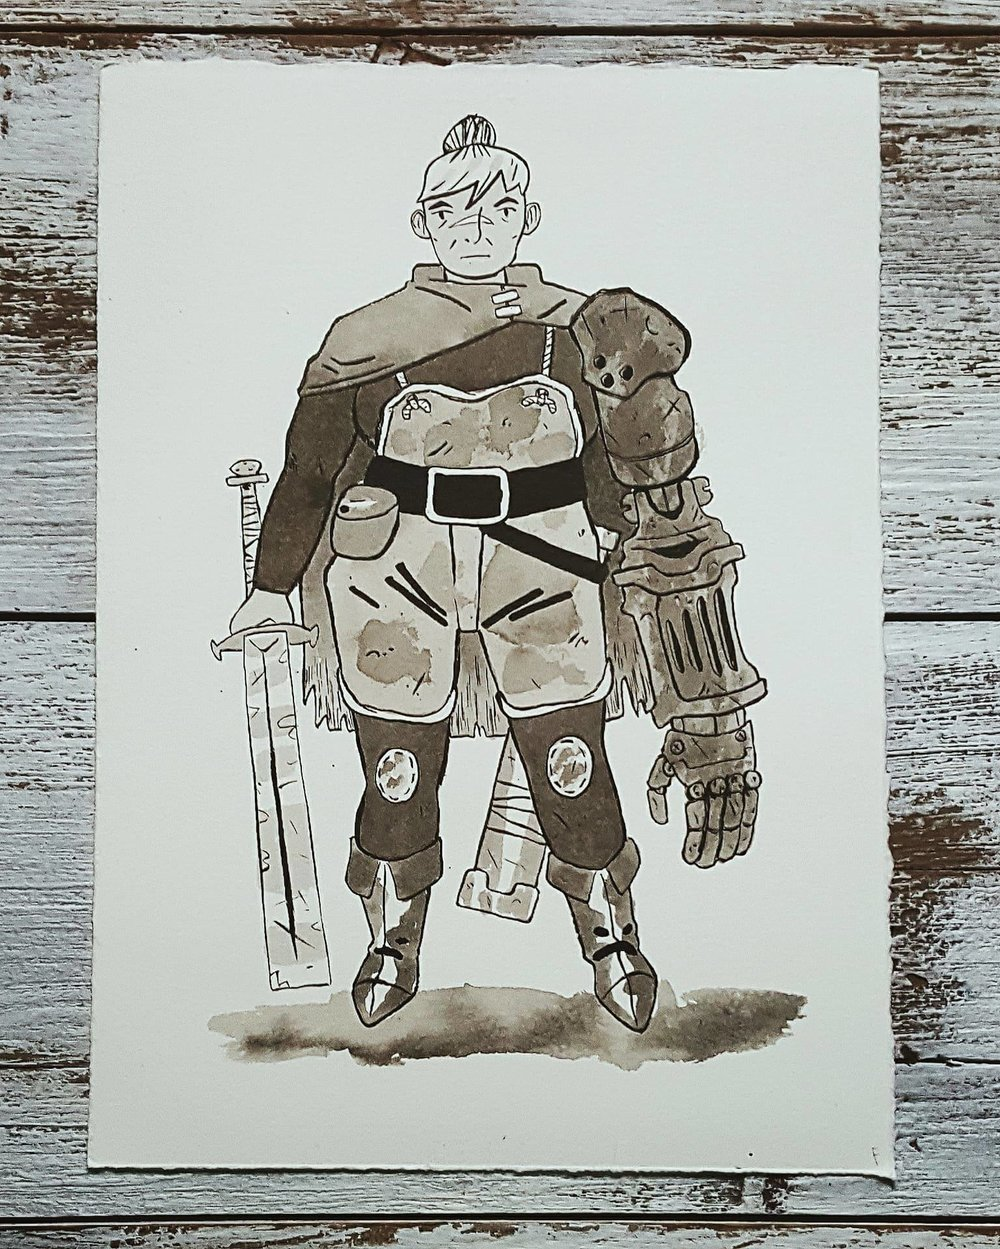 A Knight a Day No. 31, Veteran Adventurer - Mar has spent most of her years fighting on the road. She's seen it all, from ancient spirits and death defying magic to the world ending power of gods and devils alike. Now, as a rugged old adventurer, she dreams of spending her days in a modest home by a stream, fishing for minnows. But the call of the road, and her empty pockets, keep her going.